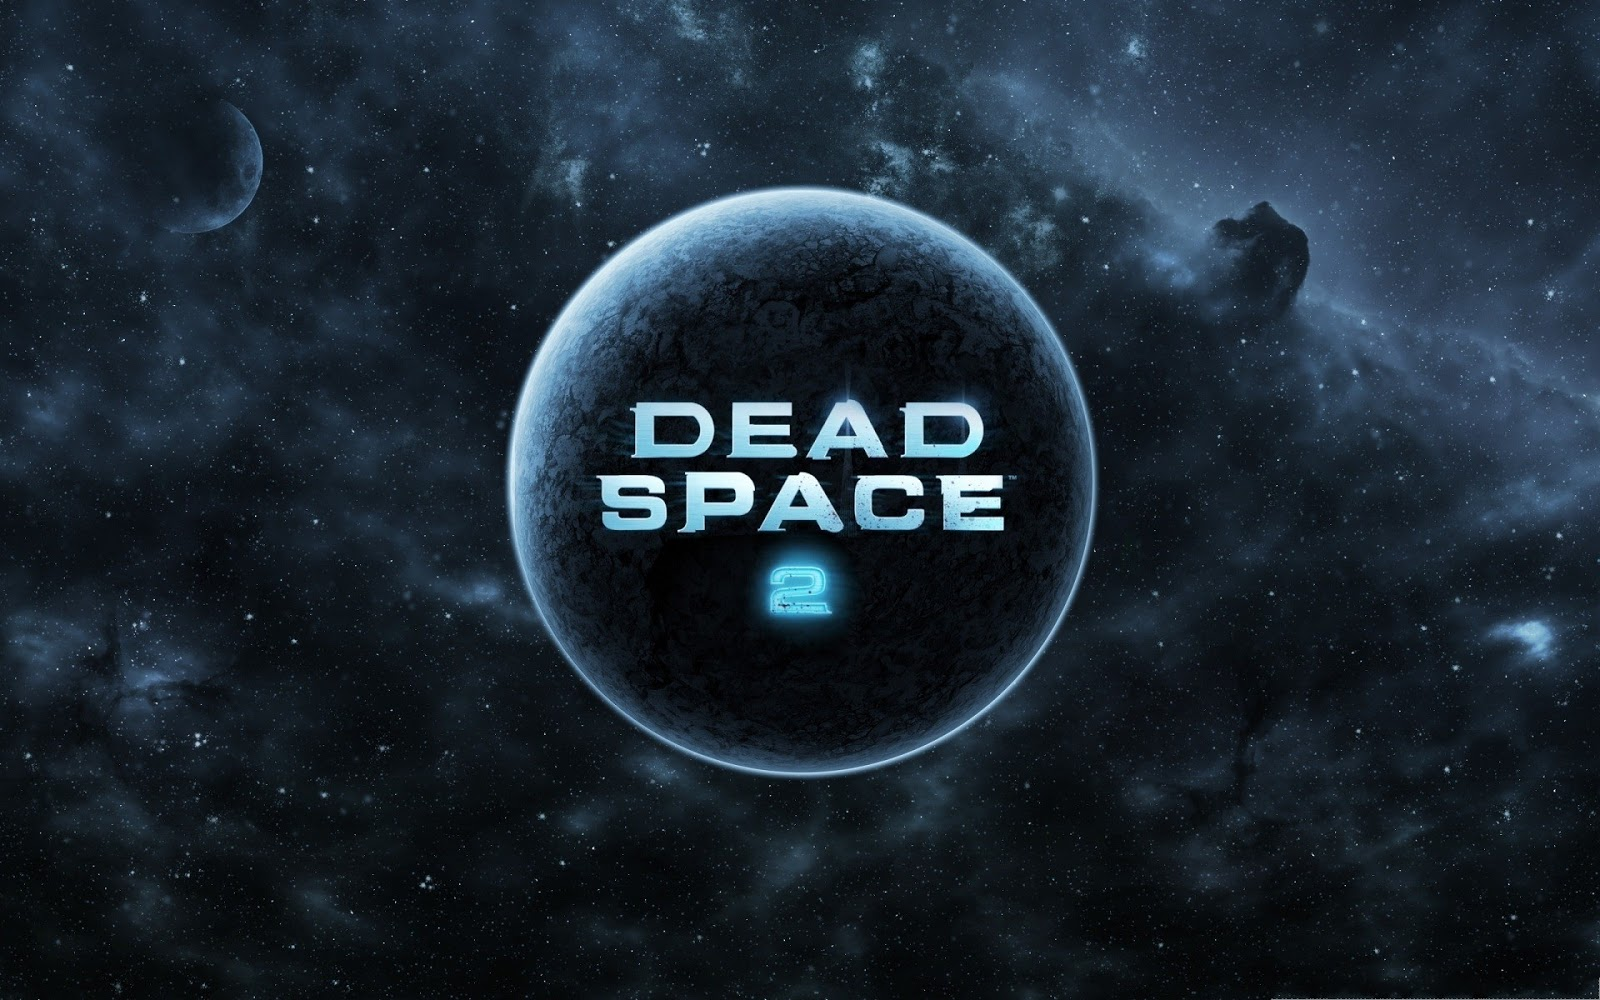 Central Wallpaper Dead Space 2 Hd Wallpapers Dvd Cover